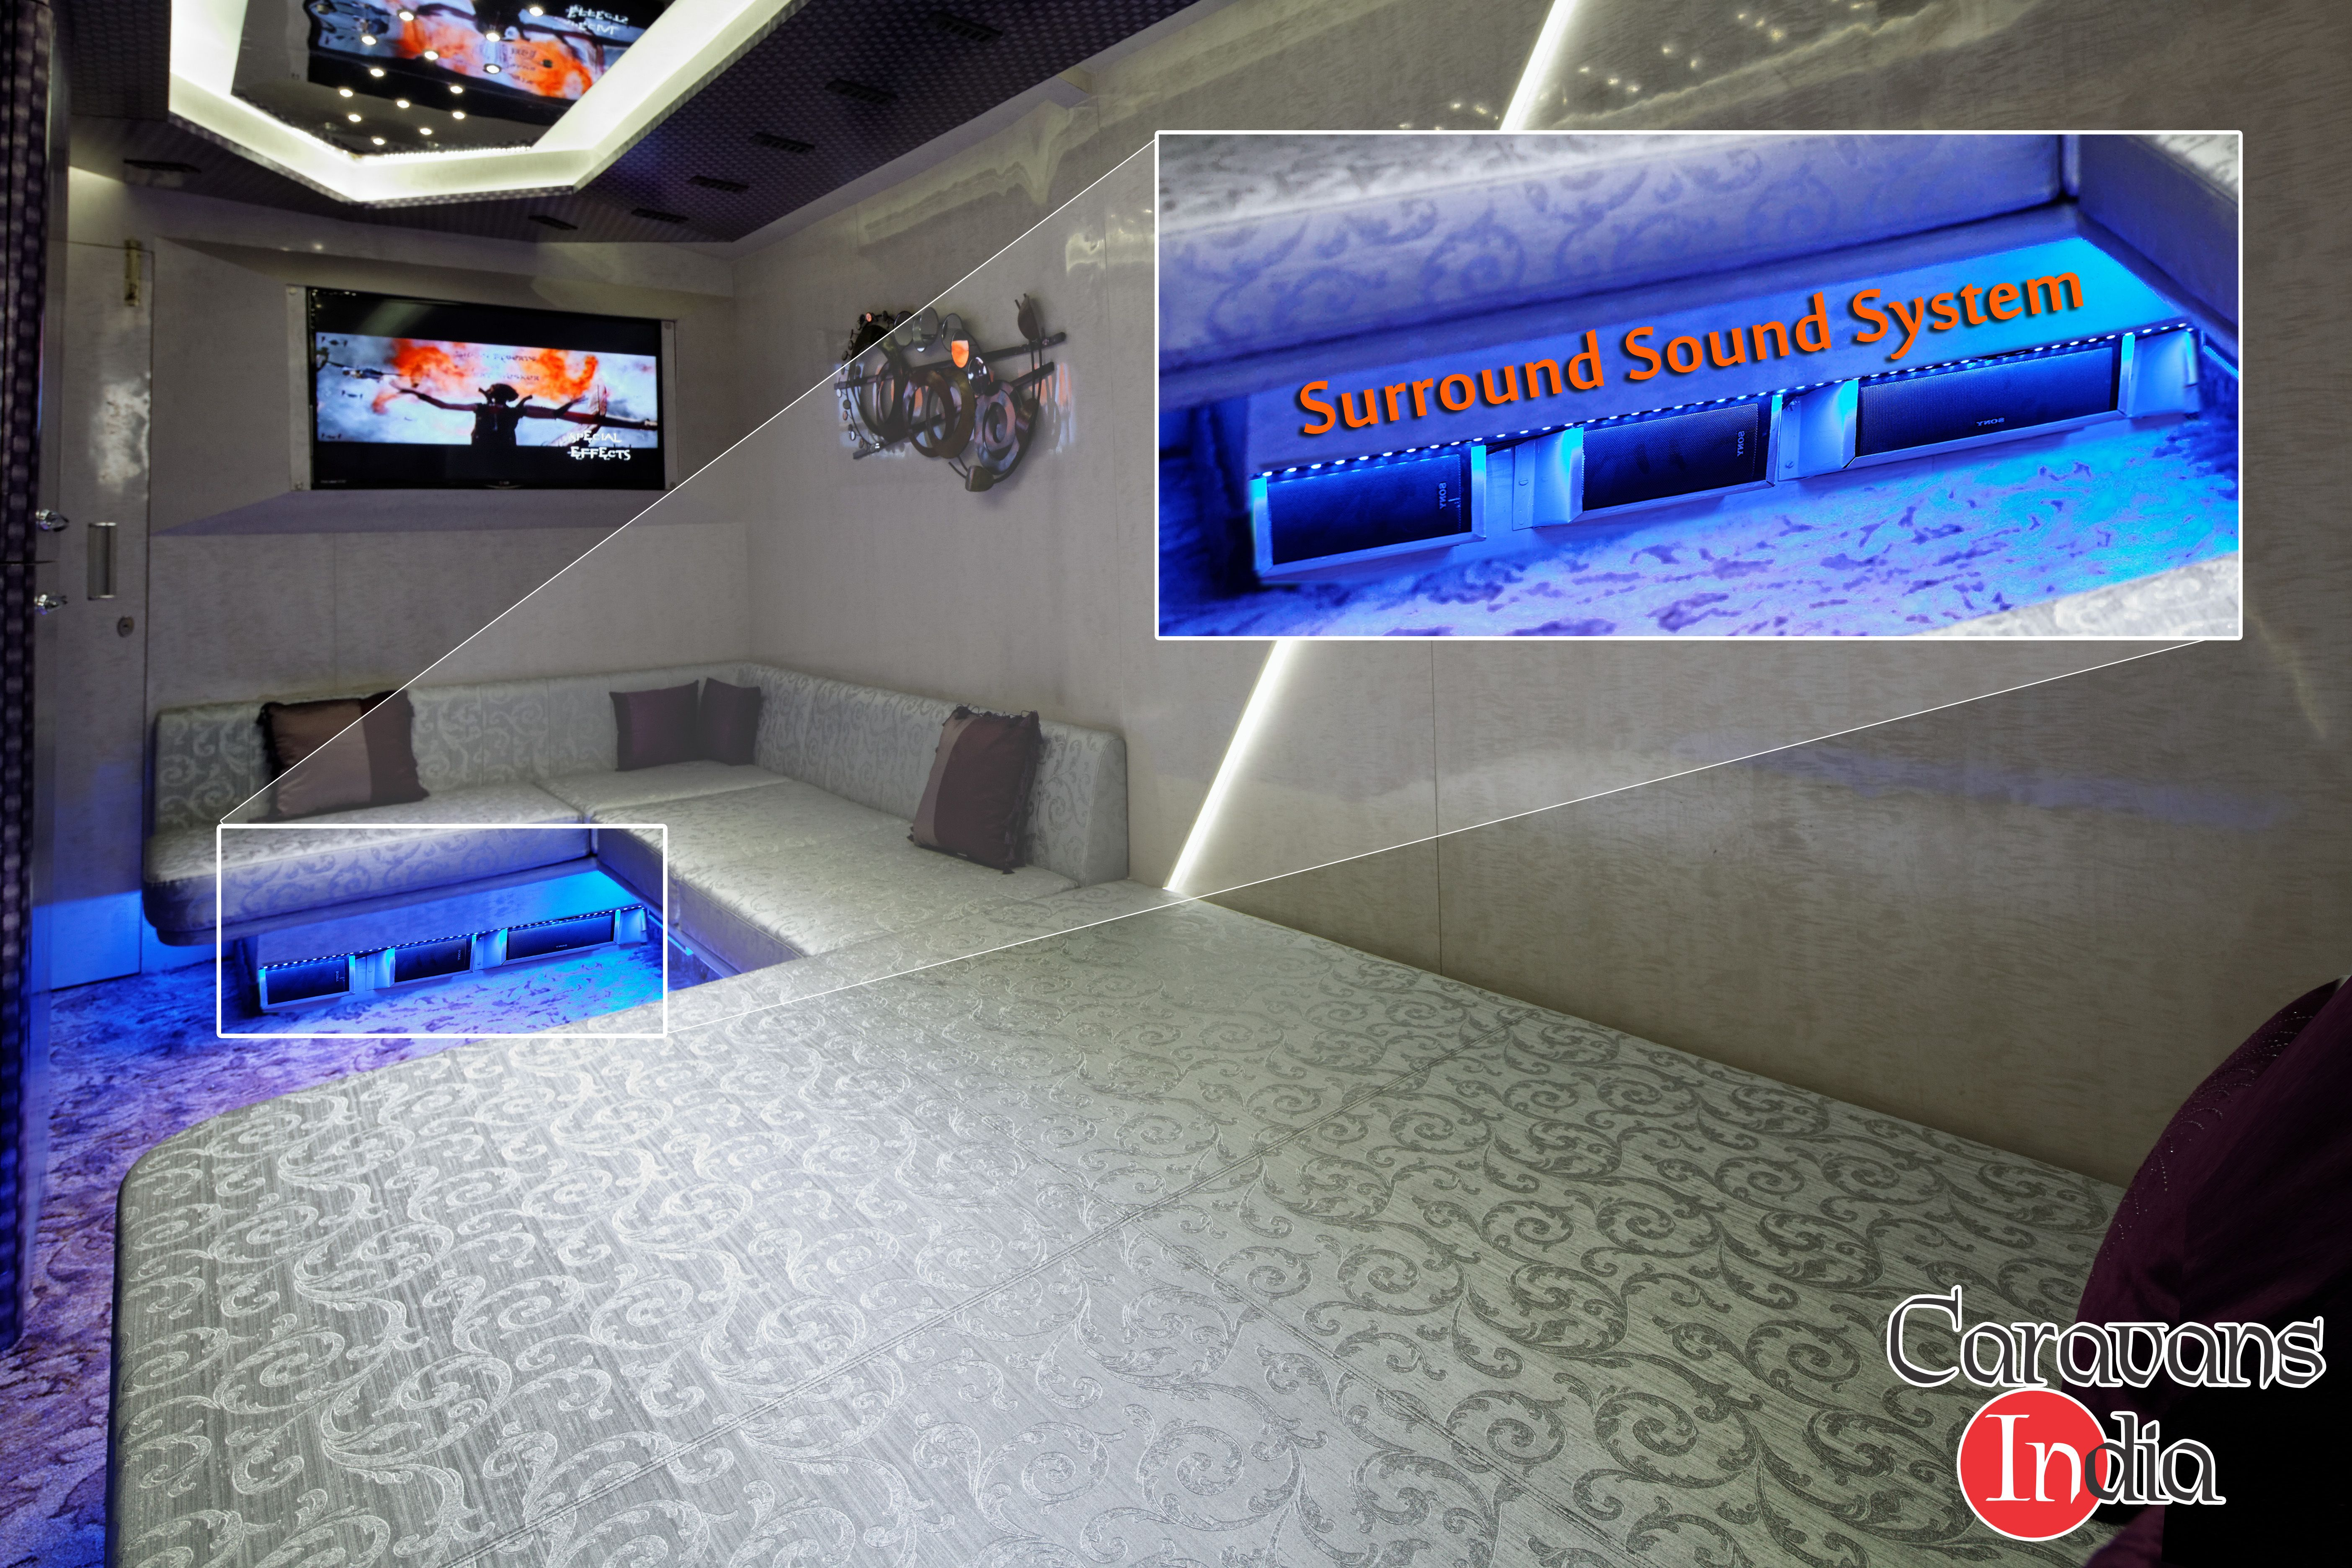 Entertainment Is Incomplete Without Advanced Surroundsoundtechnology Caravansinindia Takes Care Of It So That You Can E Surround Sound Entertaining Enjoyment